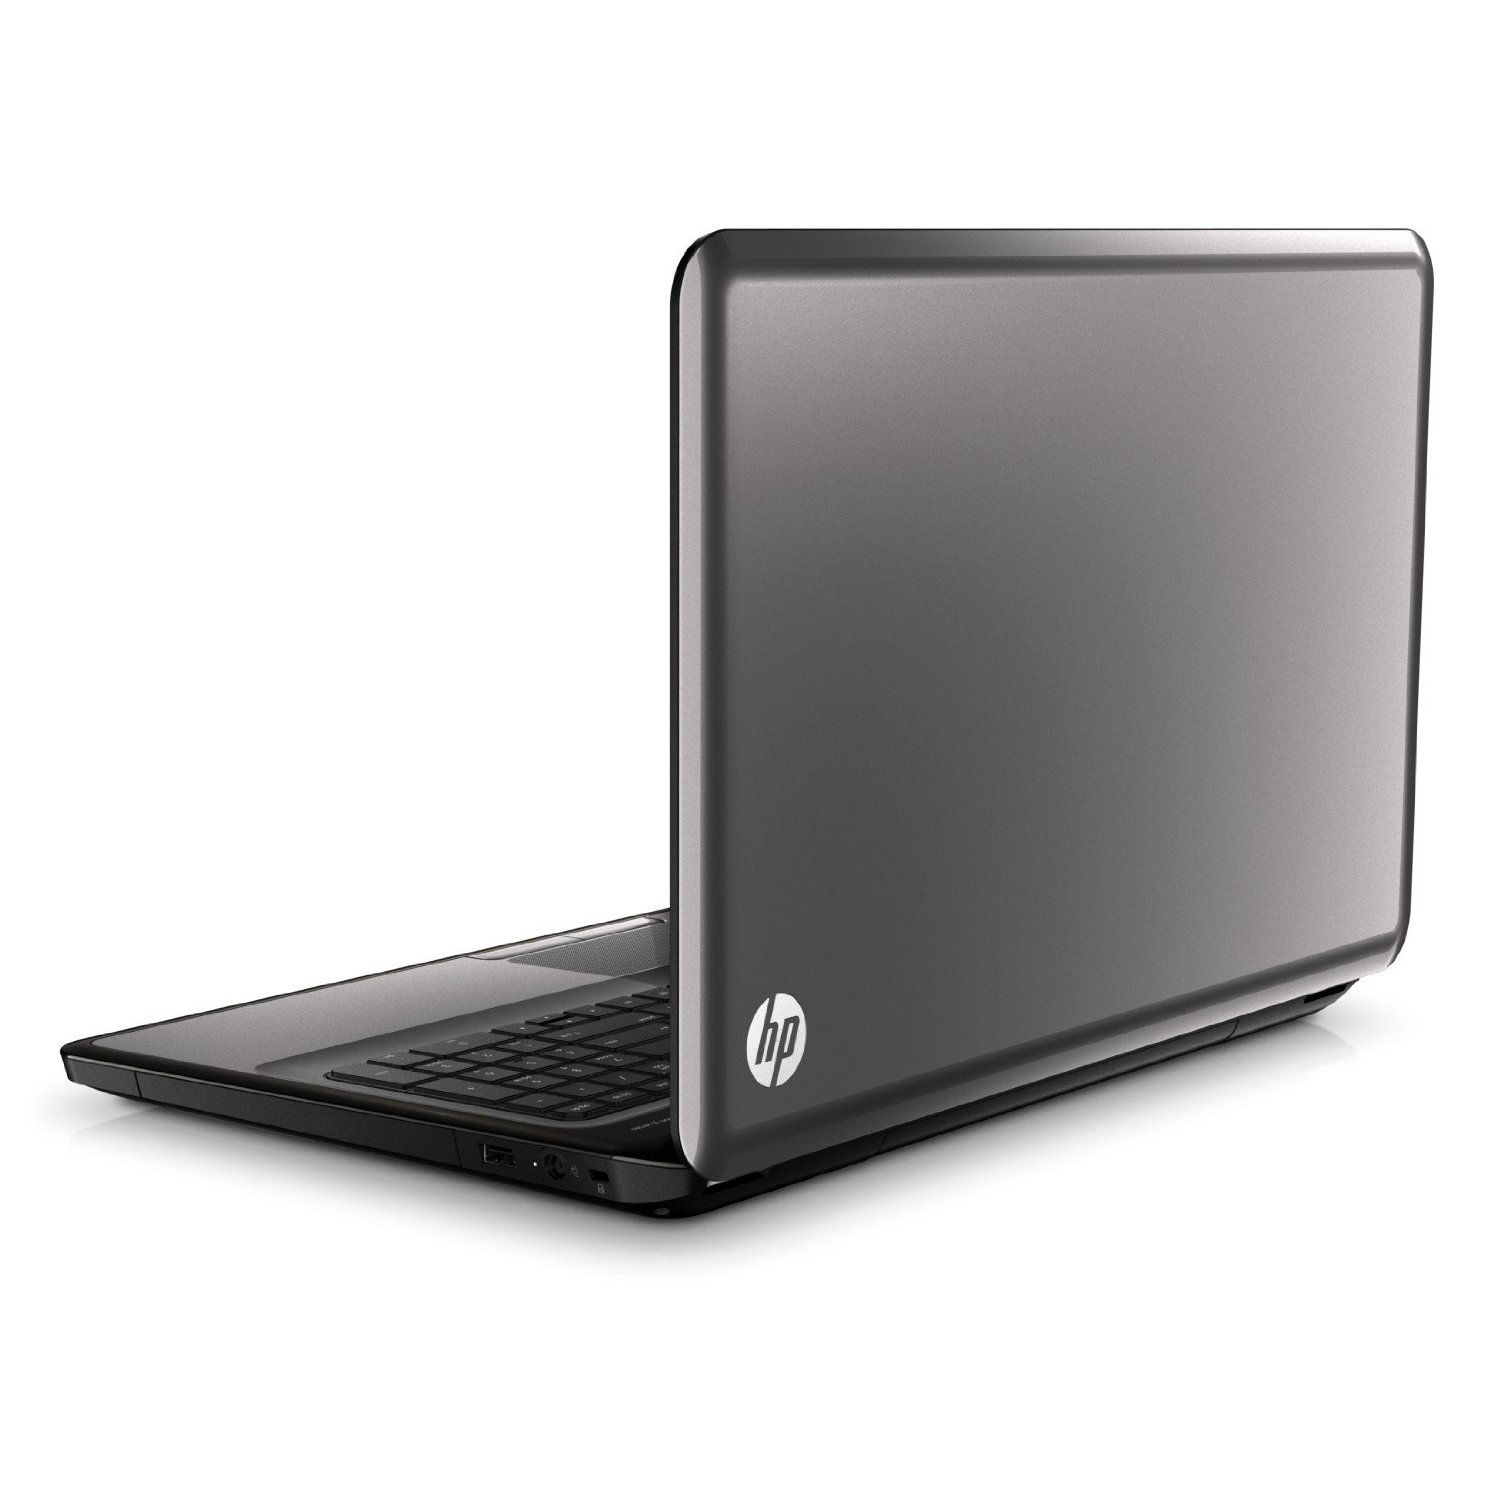 HP g71310us 17.3Inch Screen Laptop